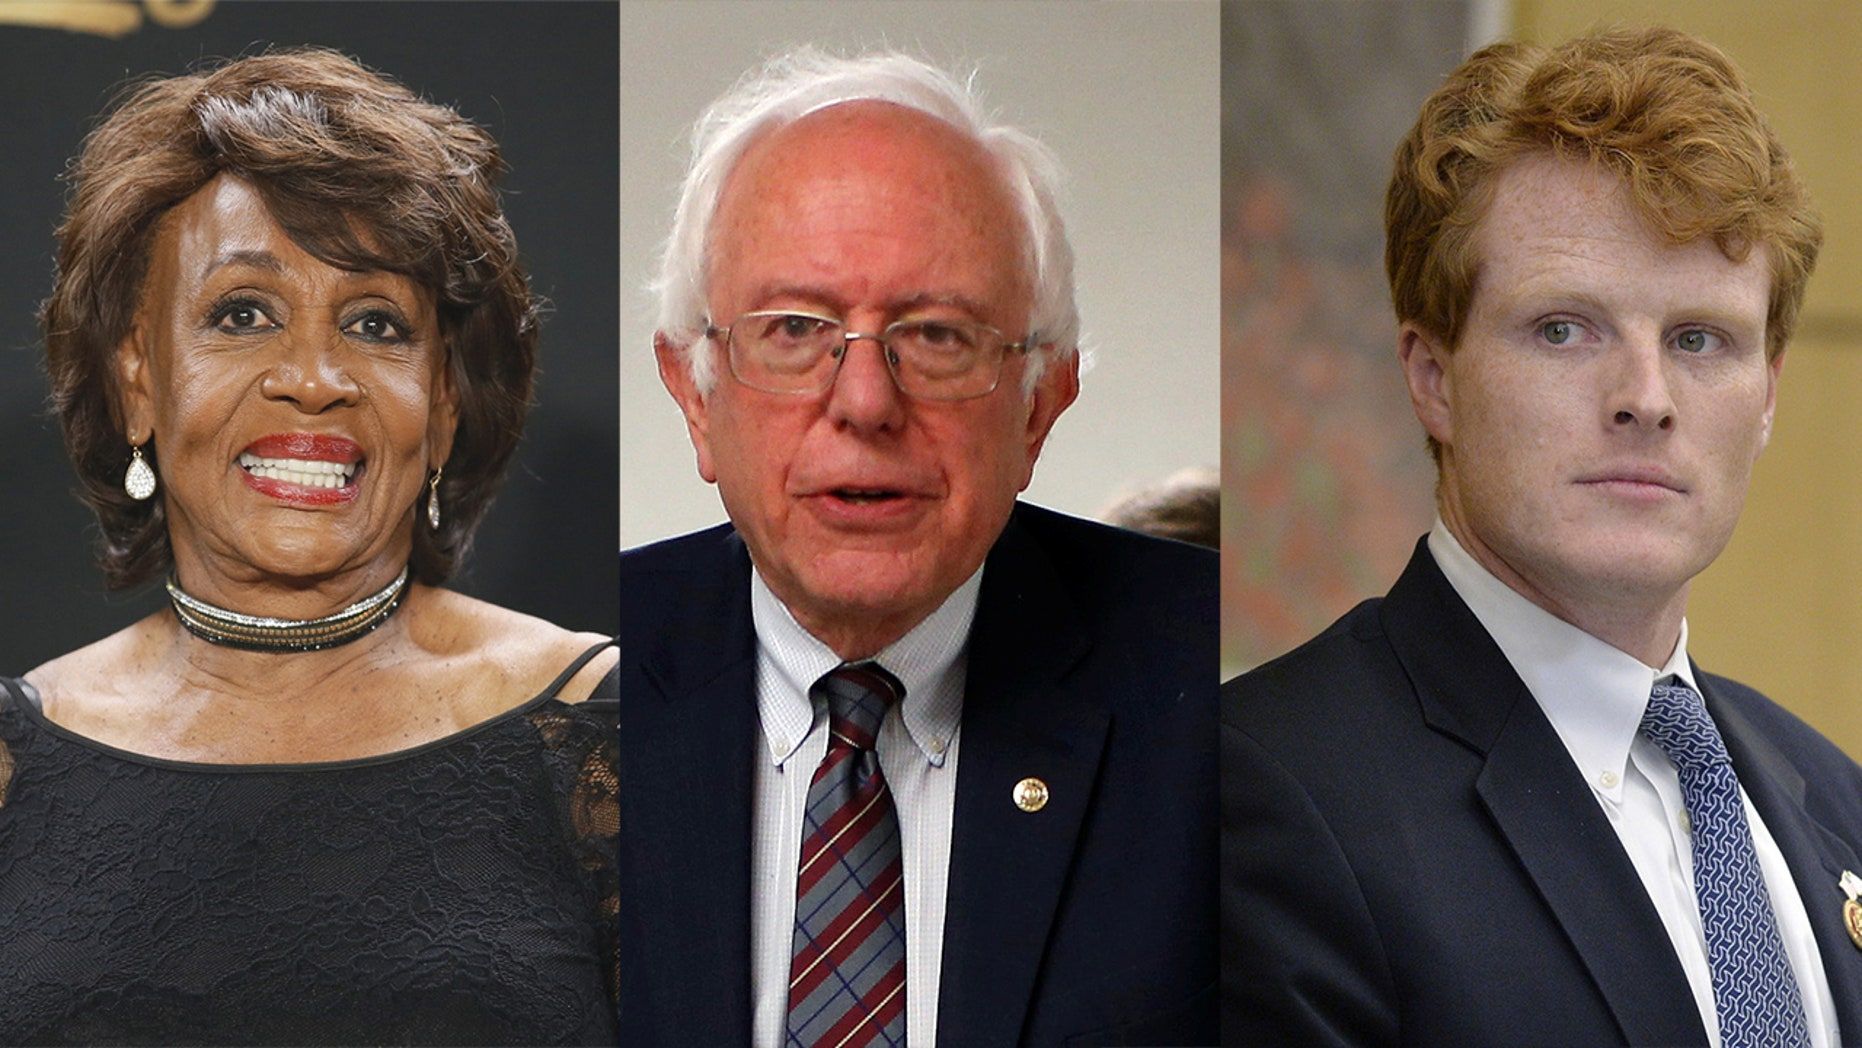 Maxine Waters, Bernie Sanders and Joseph Kennedy III will each respond to President Trump' address. But wait, there's more.